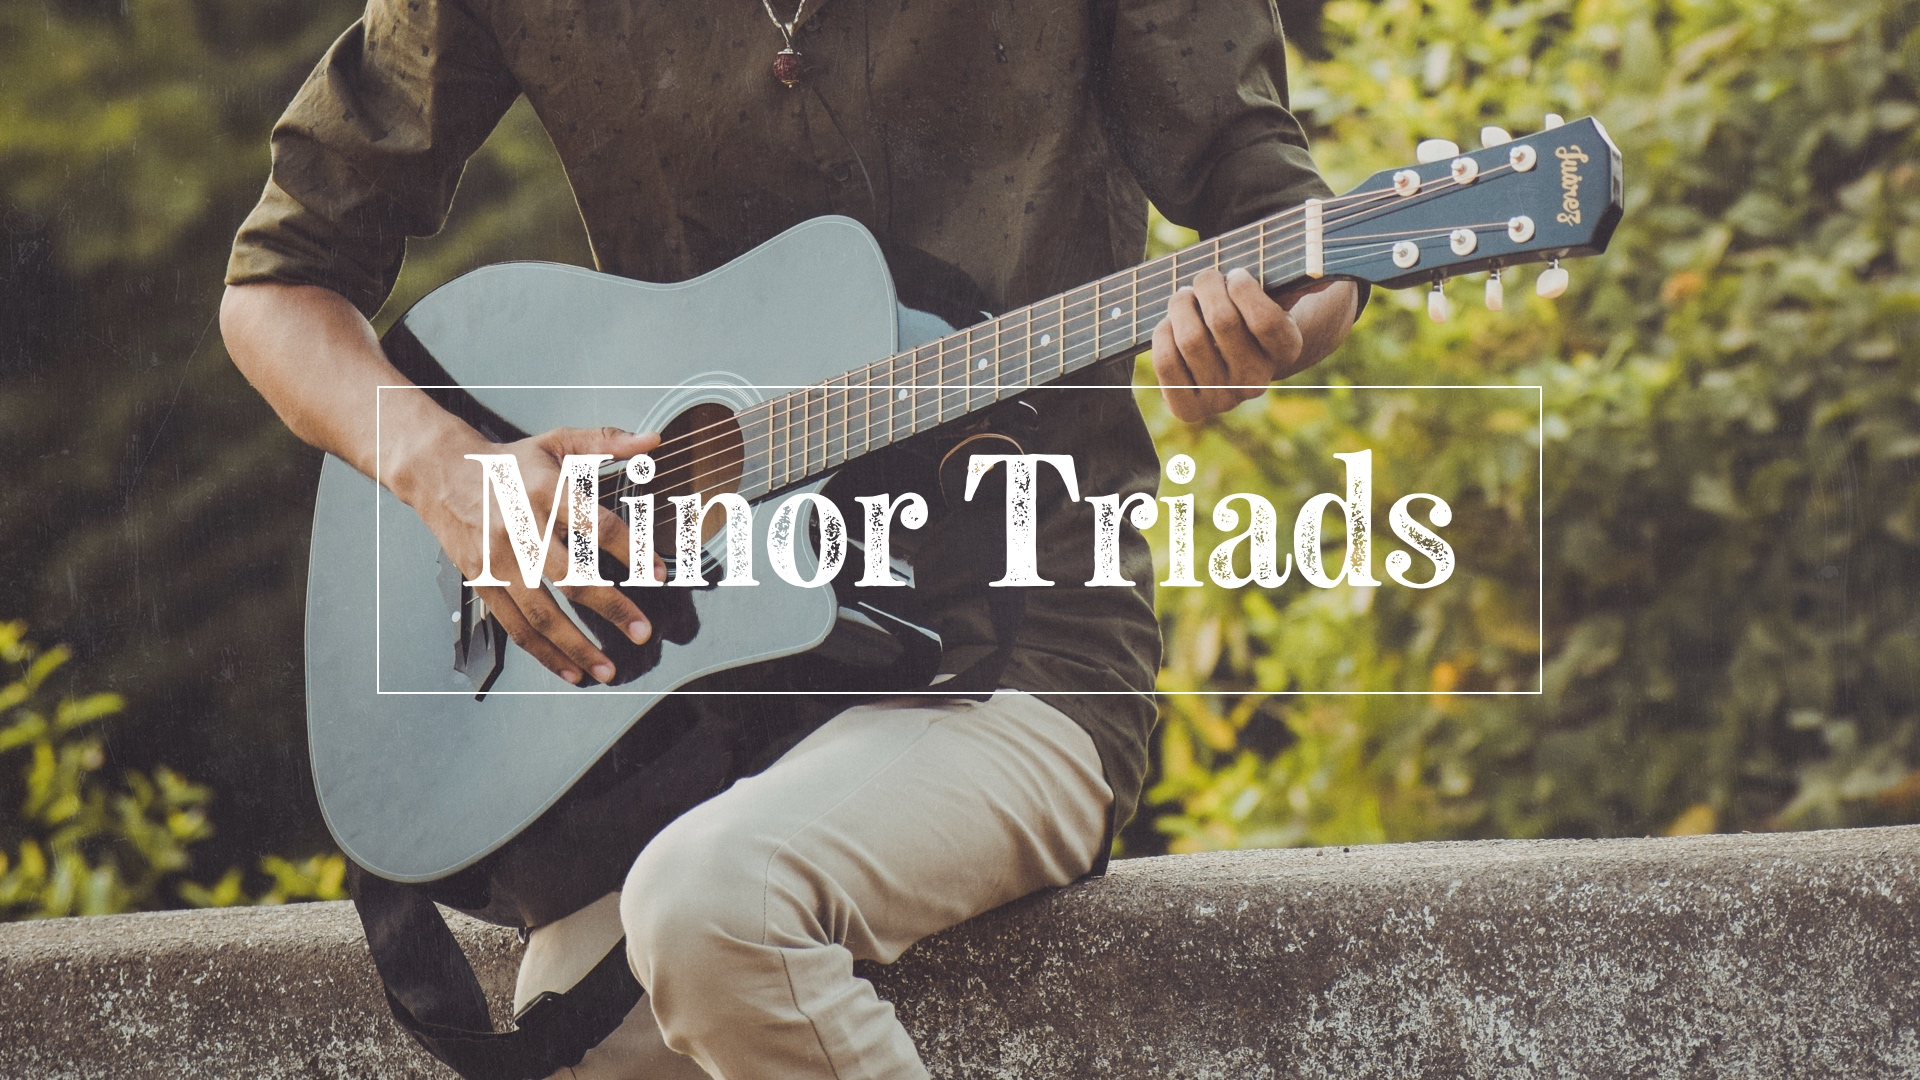 Guy learning minor triads on guitar